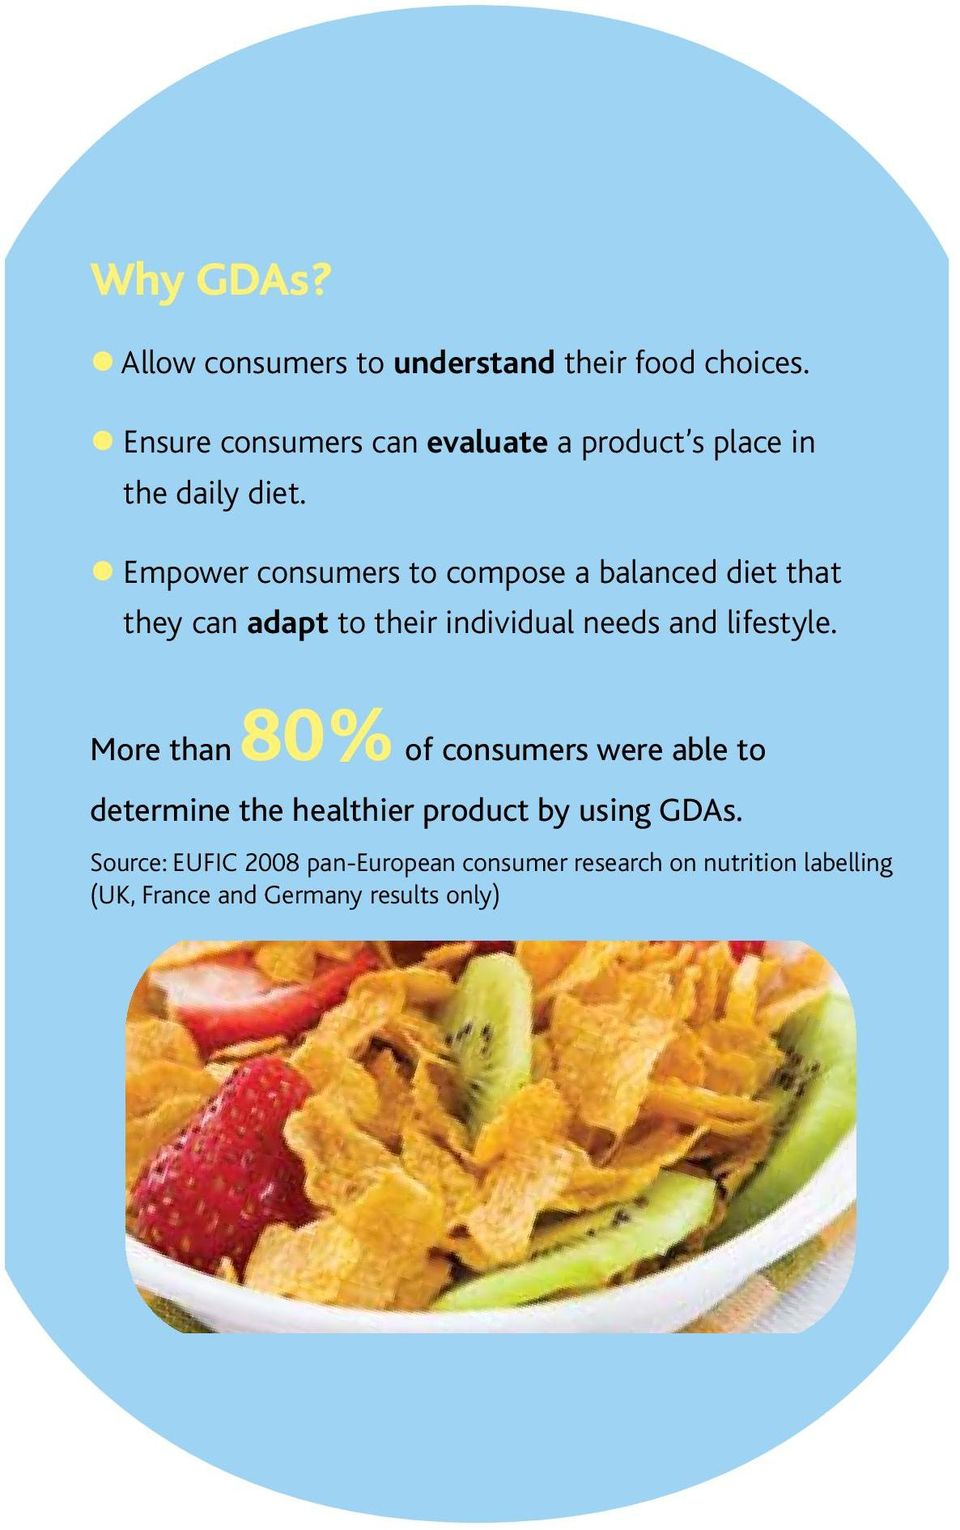 Empower consumers to compose a balanced diet that they can adapt to their individual needs and lifestyle.